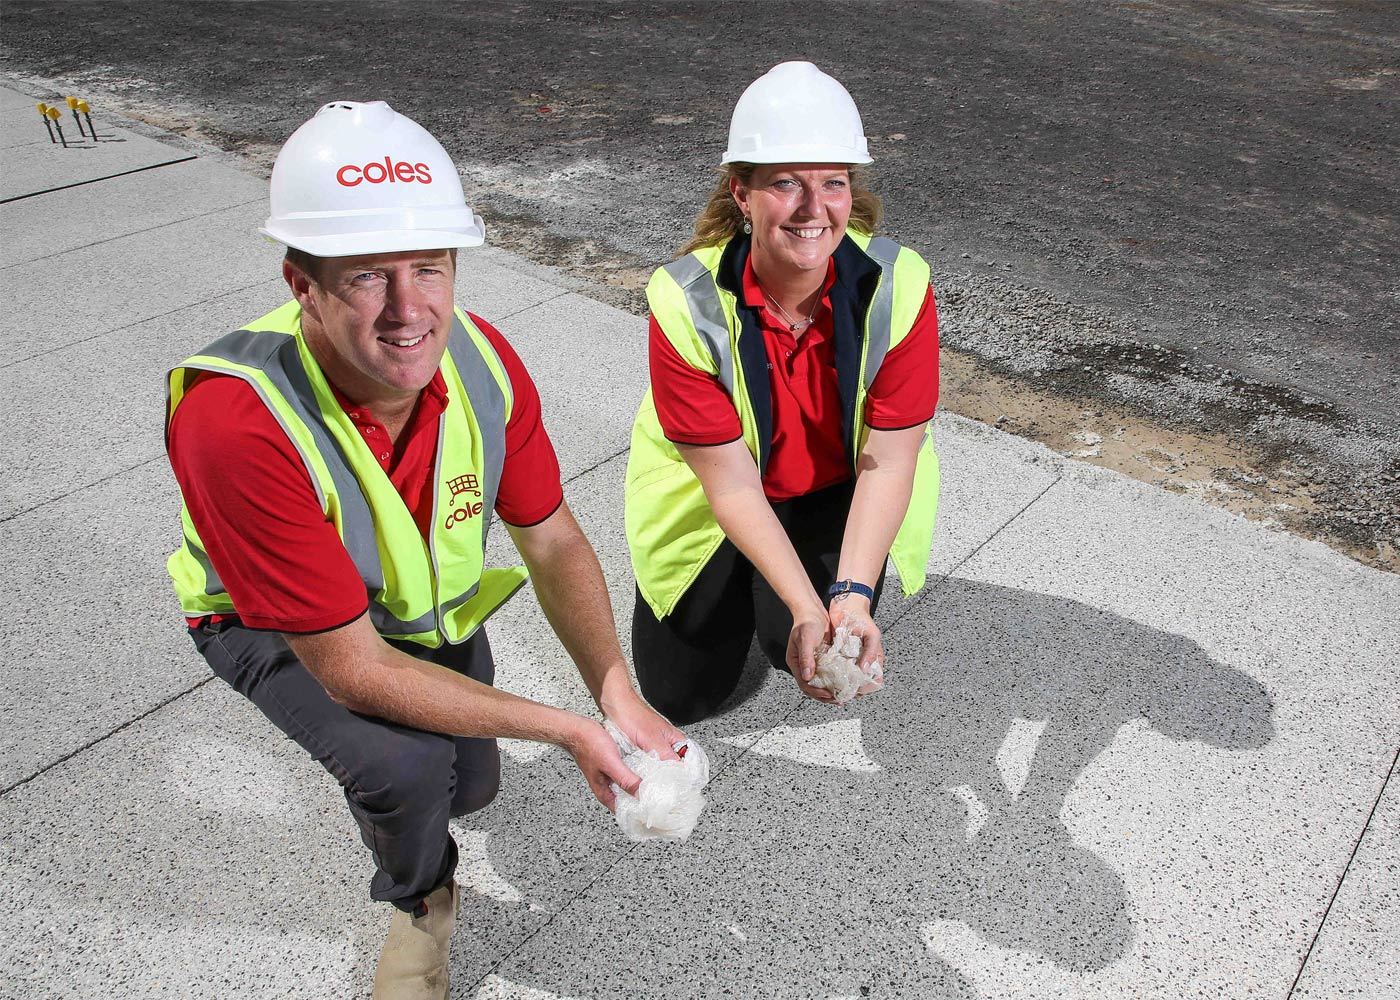 Coles Senior Project Manager Luke Hill with Coles State Construction Manager Victoria Fiona Lloyd at Coles Cobblebank with polyrock